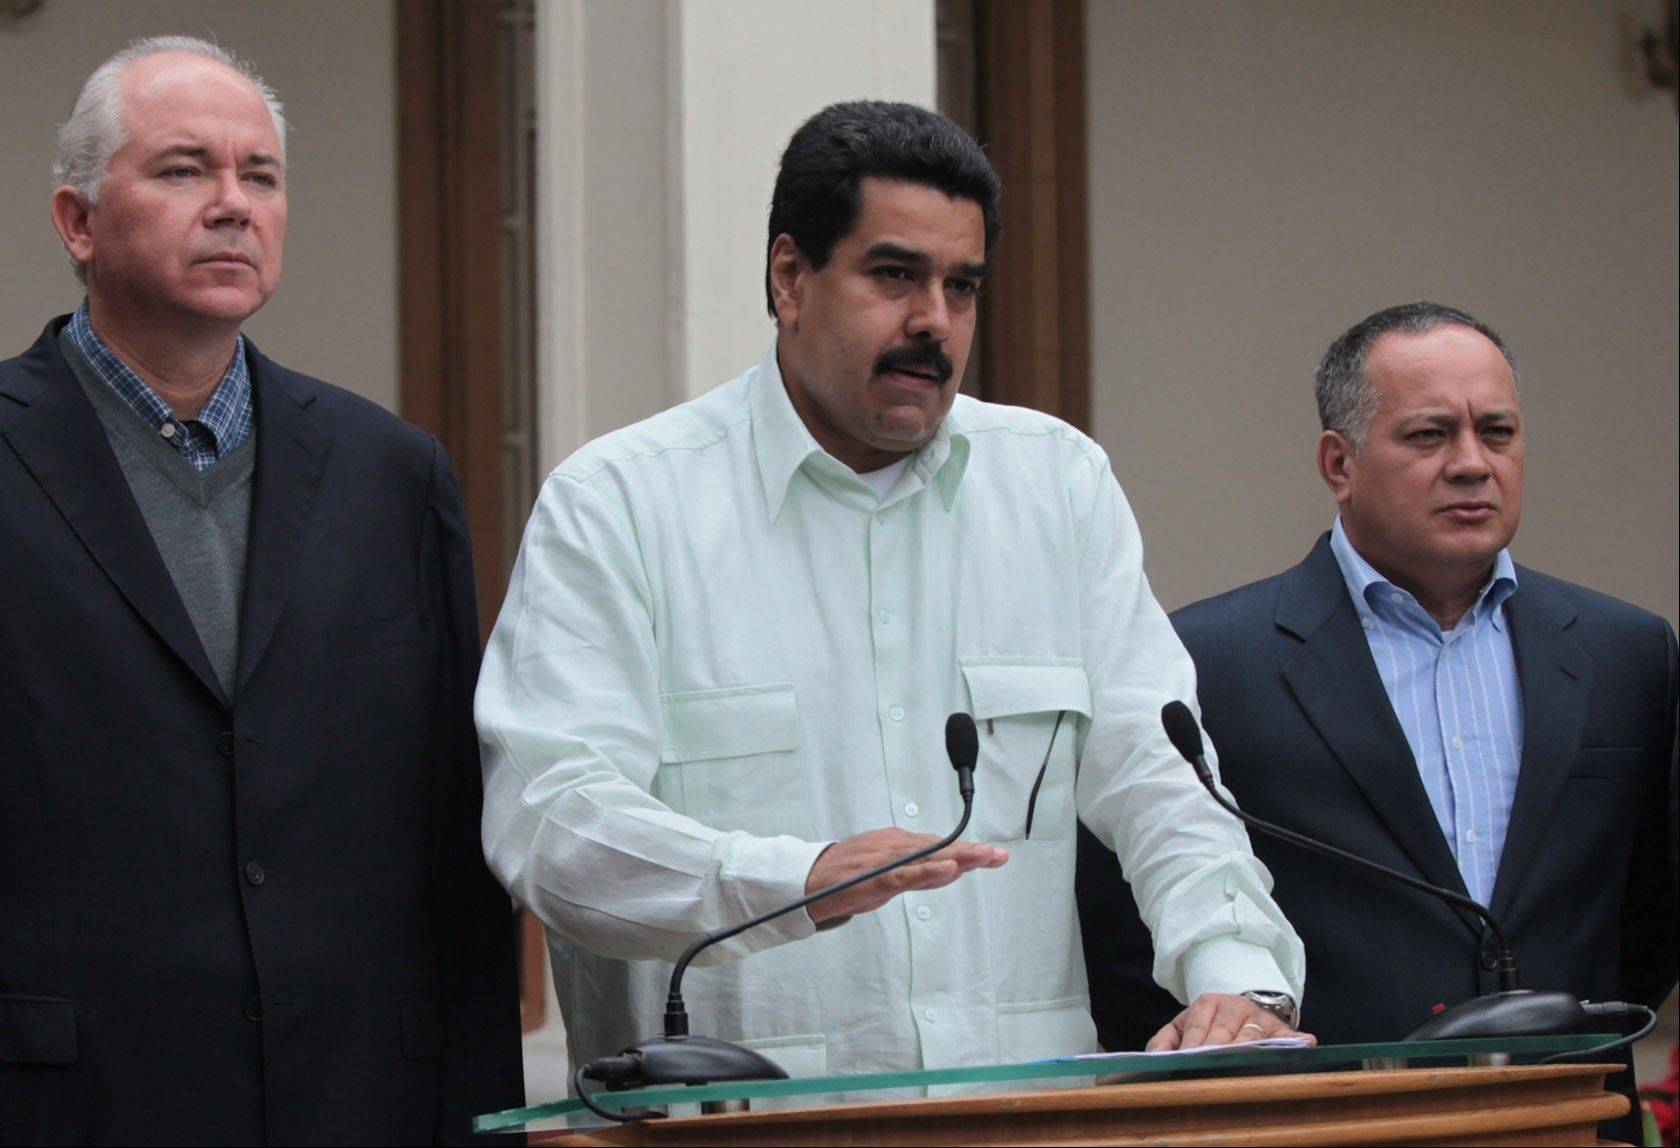 Venezuela�s Vice President Nicolas Maduro, center, addresses the nation on live television flanked by Oil Minister Rafael Ramirez, left, and National Assembly President Diosdado Cabello at Miraflores presidential palace in Caracas, Venezuela, Wednesday, Dec. 12, 2012. Over the weekend, President Hugo Chavez named Maduro as his chosen political heir.